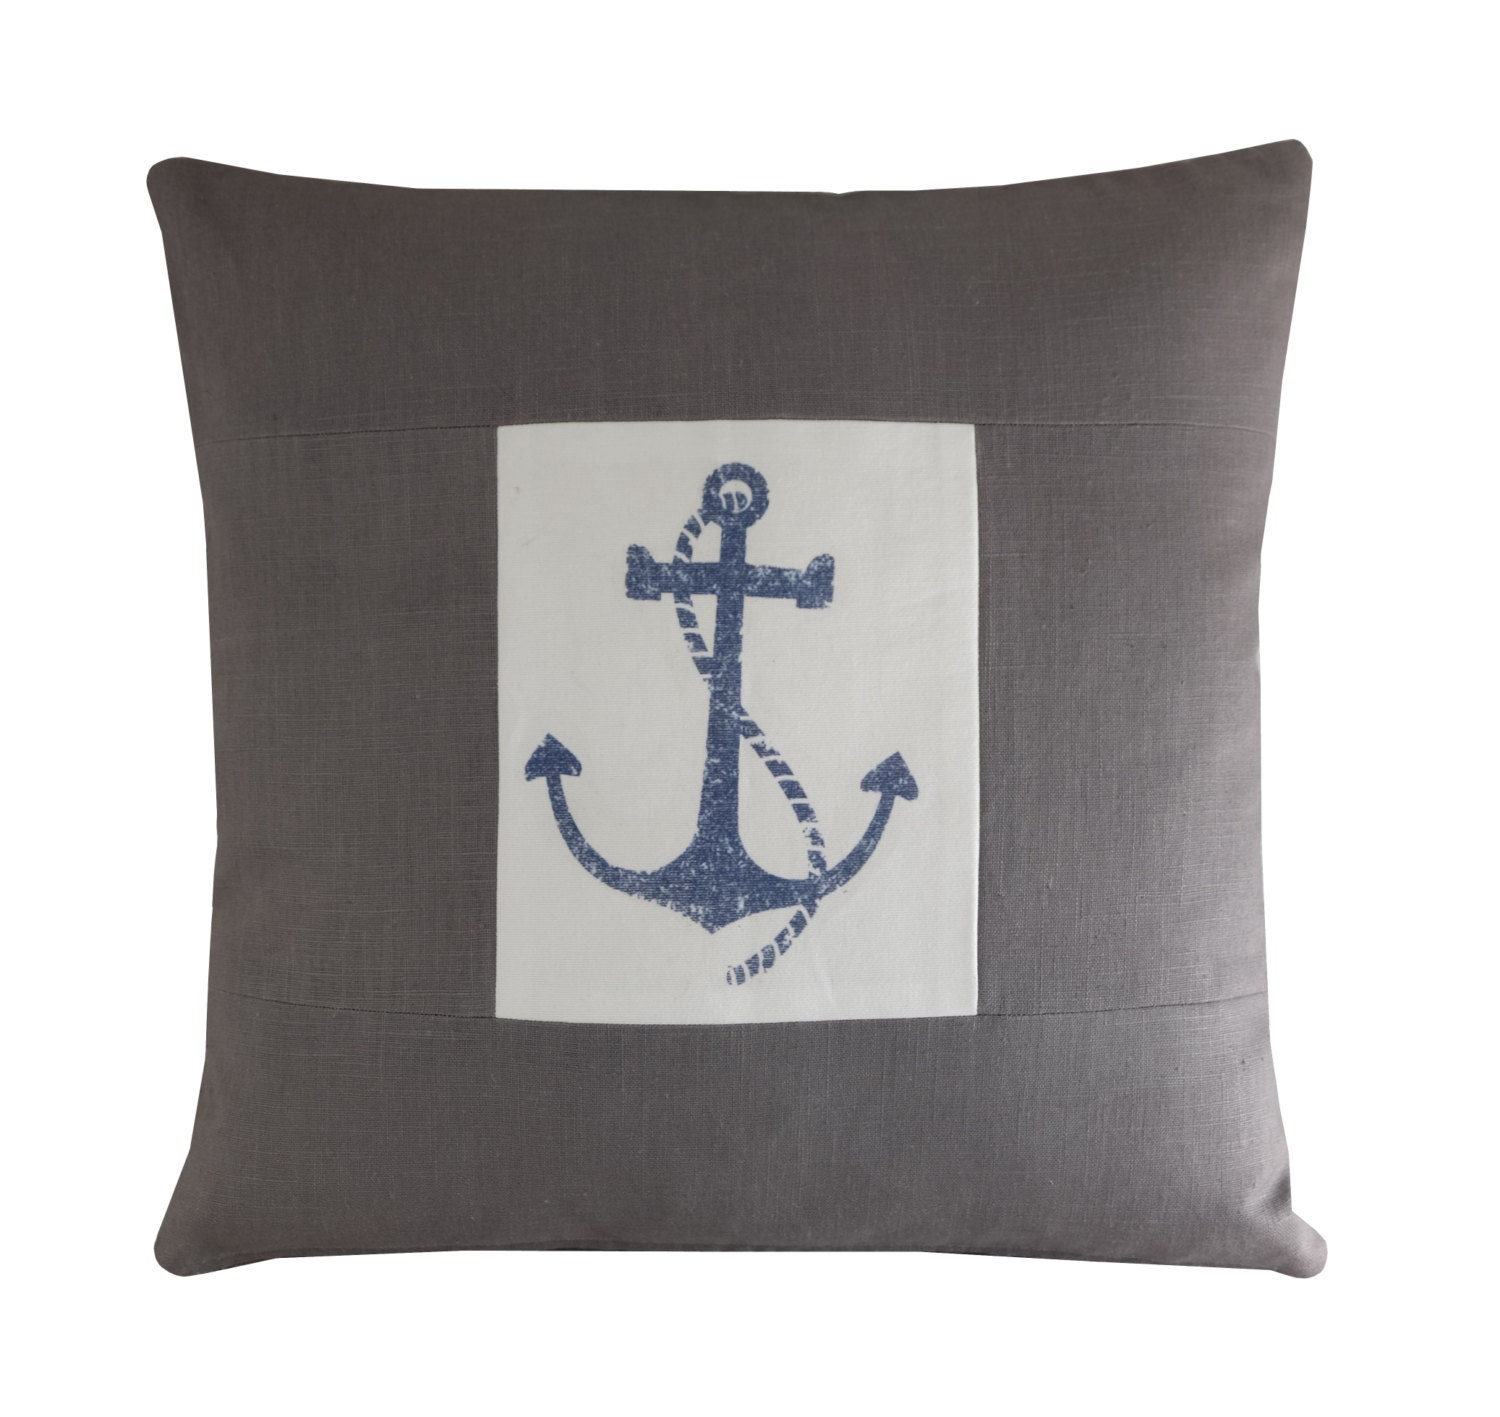 About this item. Quickly and easily transform your space with your very own, custom decorative pillow. These stylish and cuddly pillows are printed on soft, woven polyester with your own design on the front and a solid black color on the back.